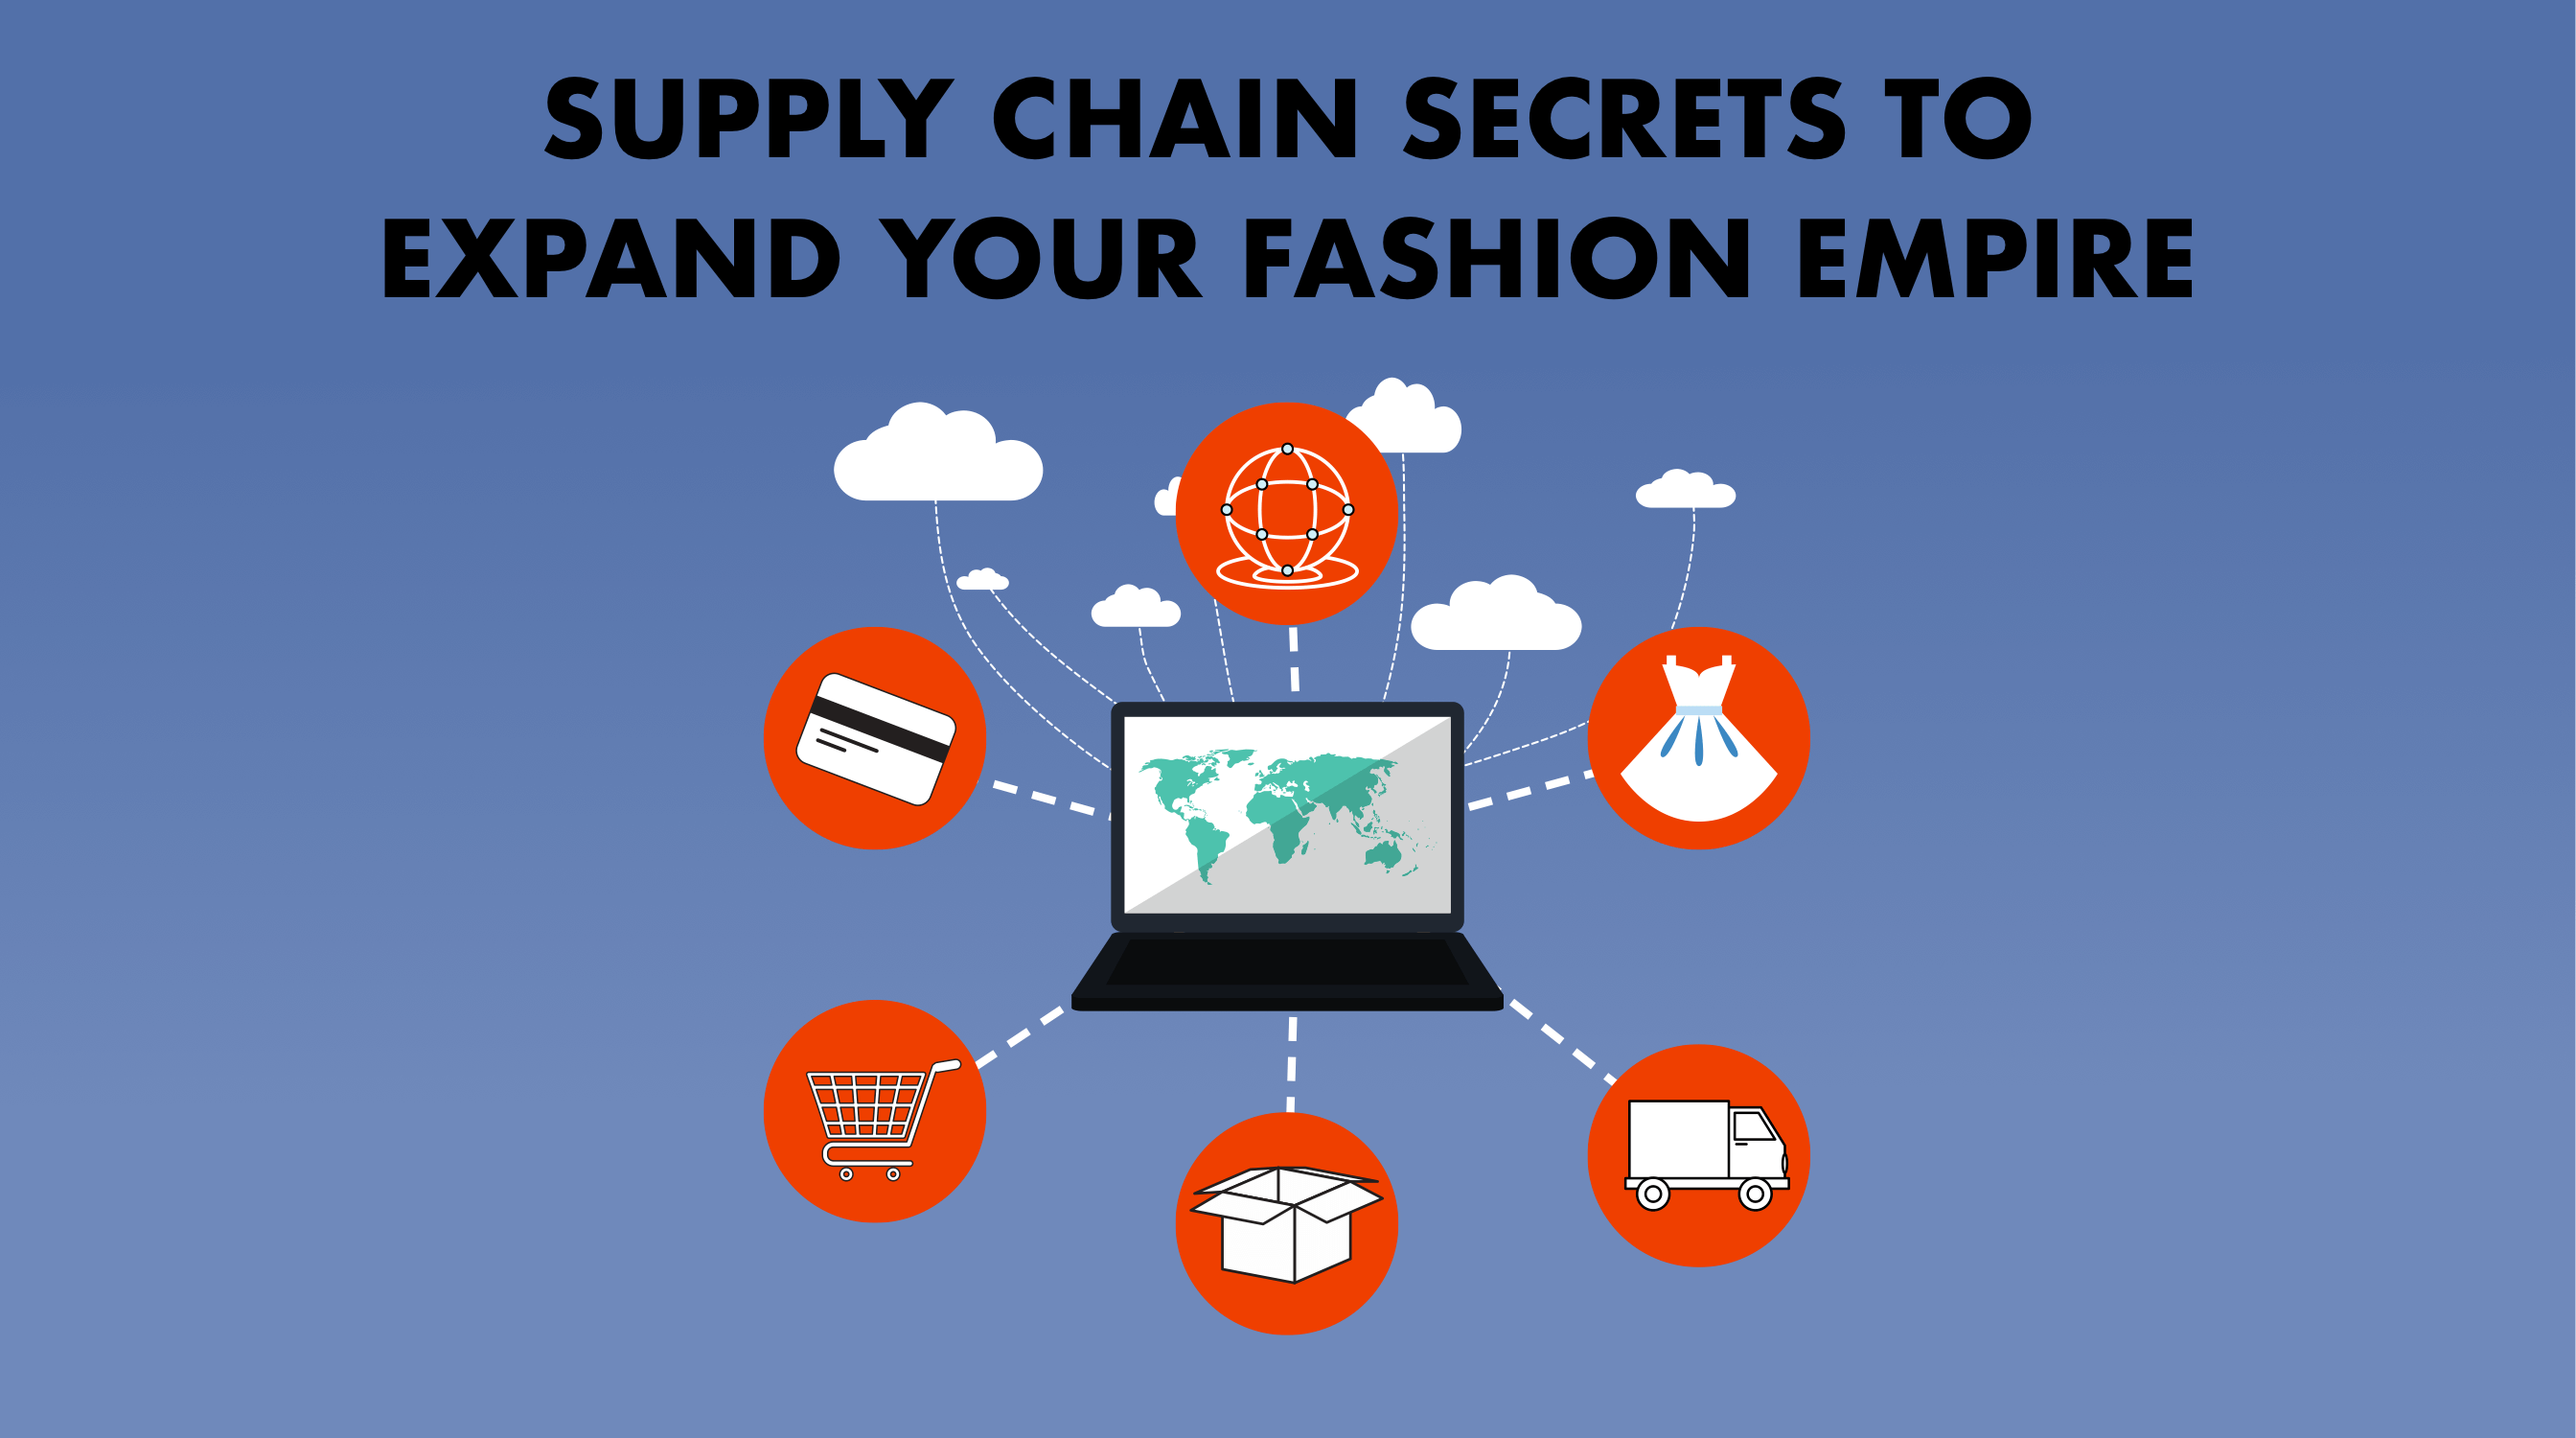 Supply Chain Secrets to Expand Your Fashion Empire From